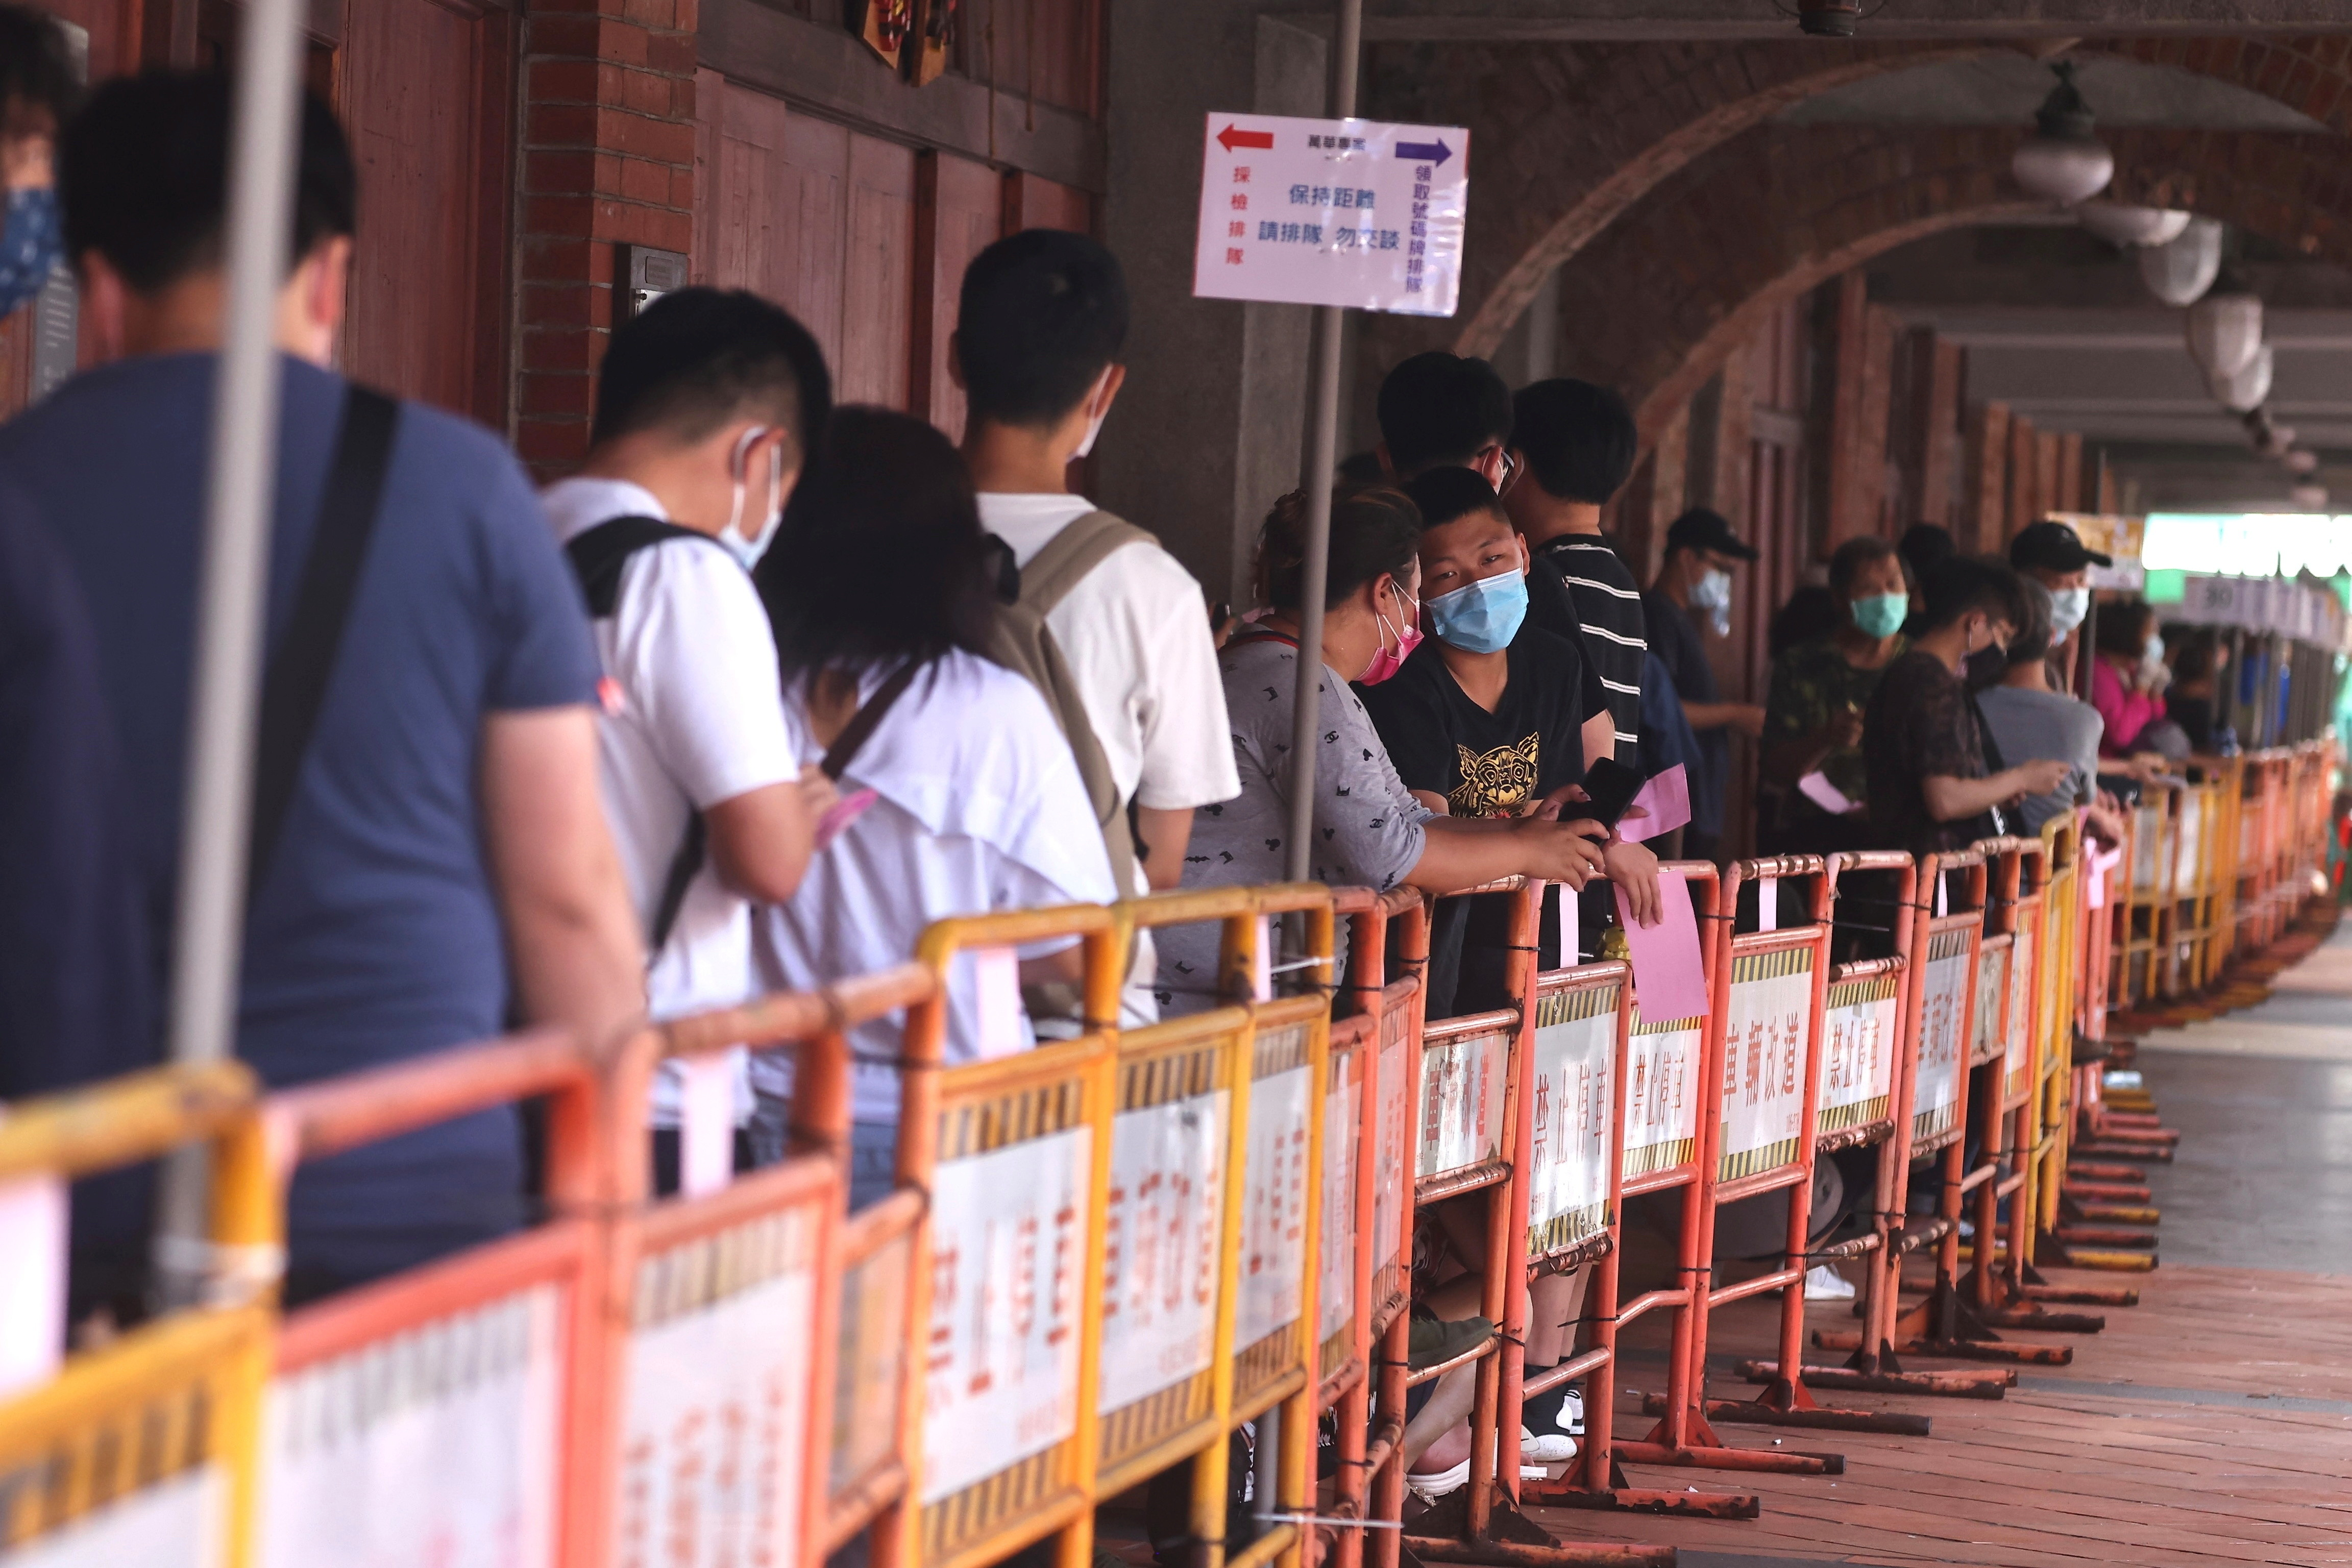 People wearing protective face masks wait to get their rapid test following a surge of coronavirus disease (COVID-19) infections in Taipei, Taiwan, May 19, 2021. REUTERS/Ann Wang - RC2OIN98NKQ0